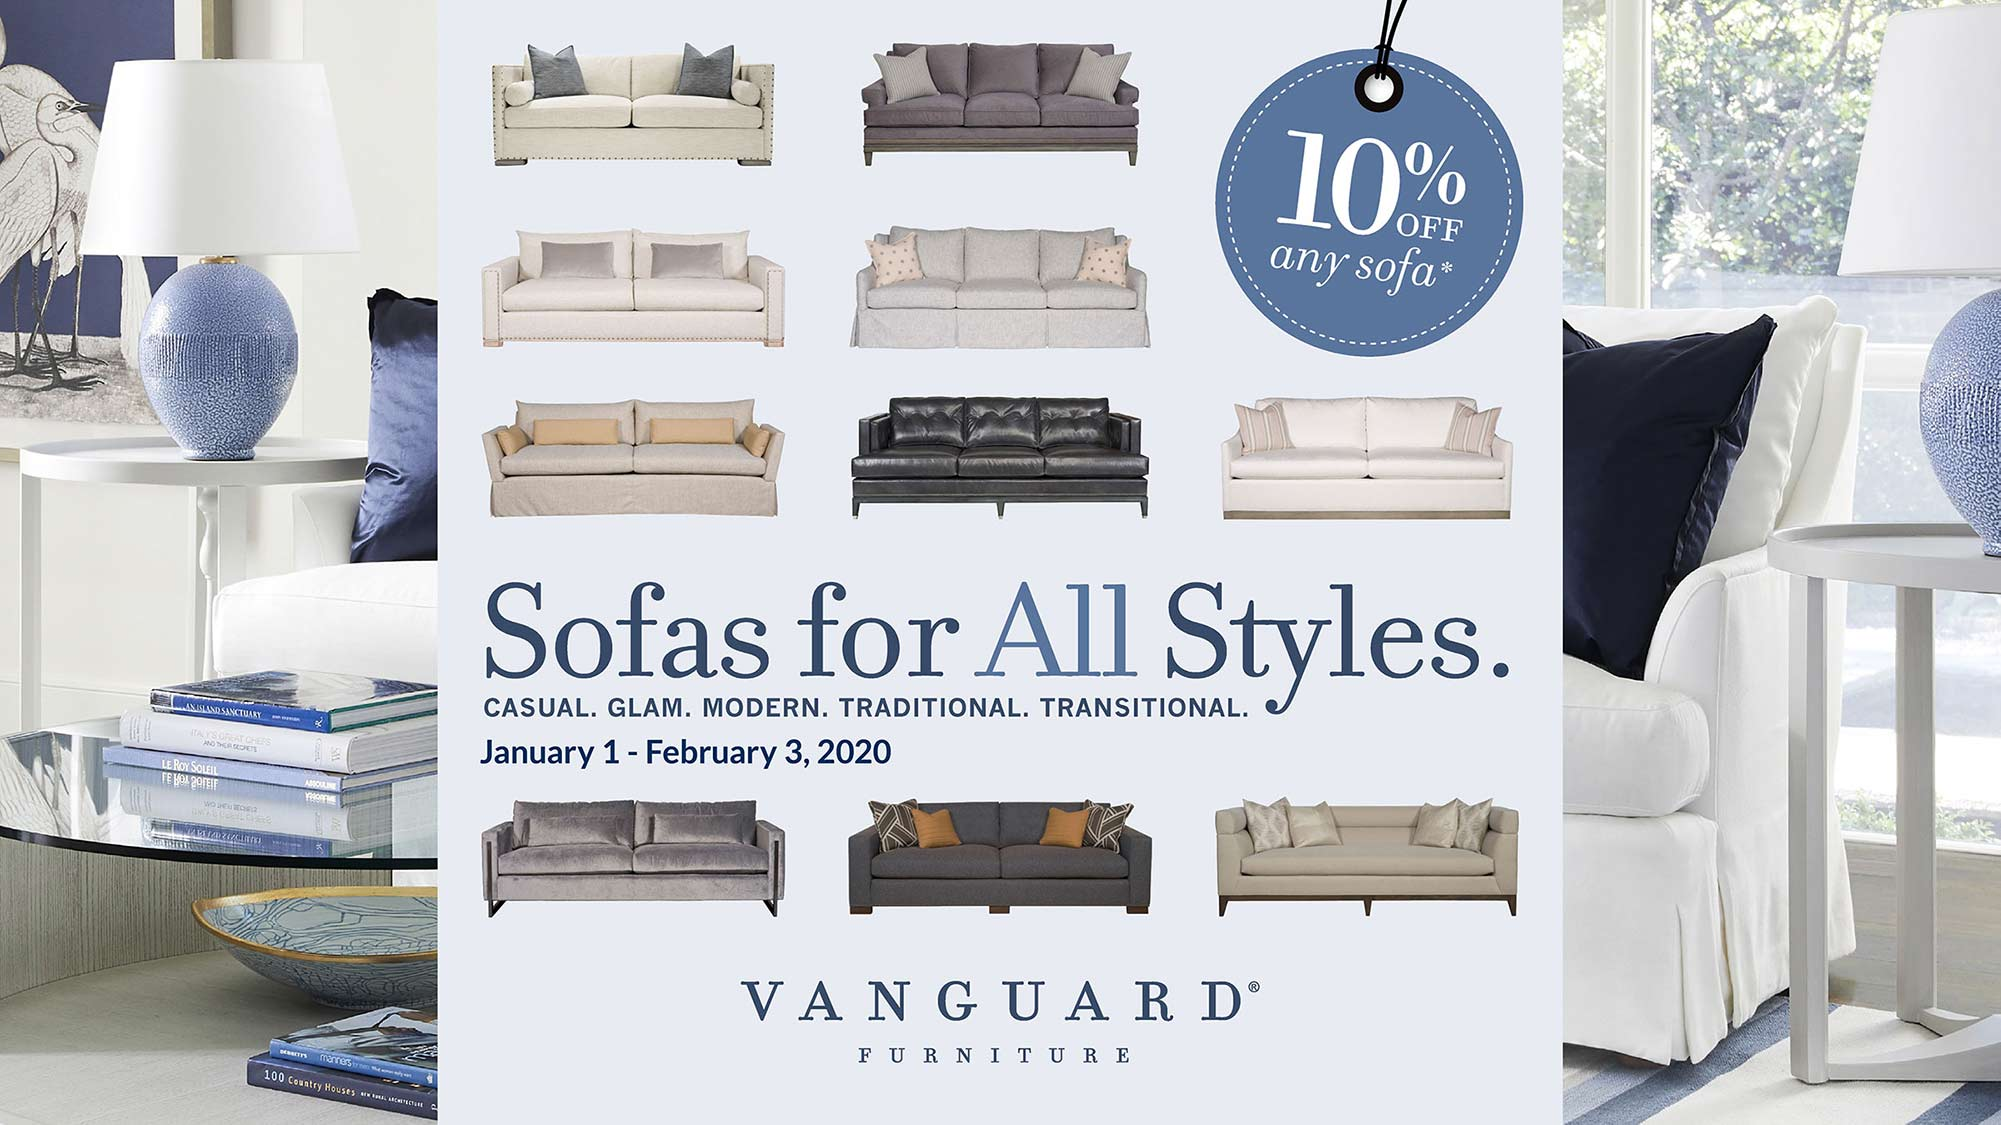 Vanguard Sofa Sale - January 2020